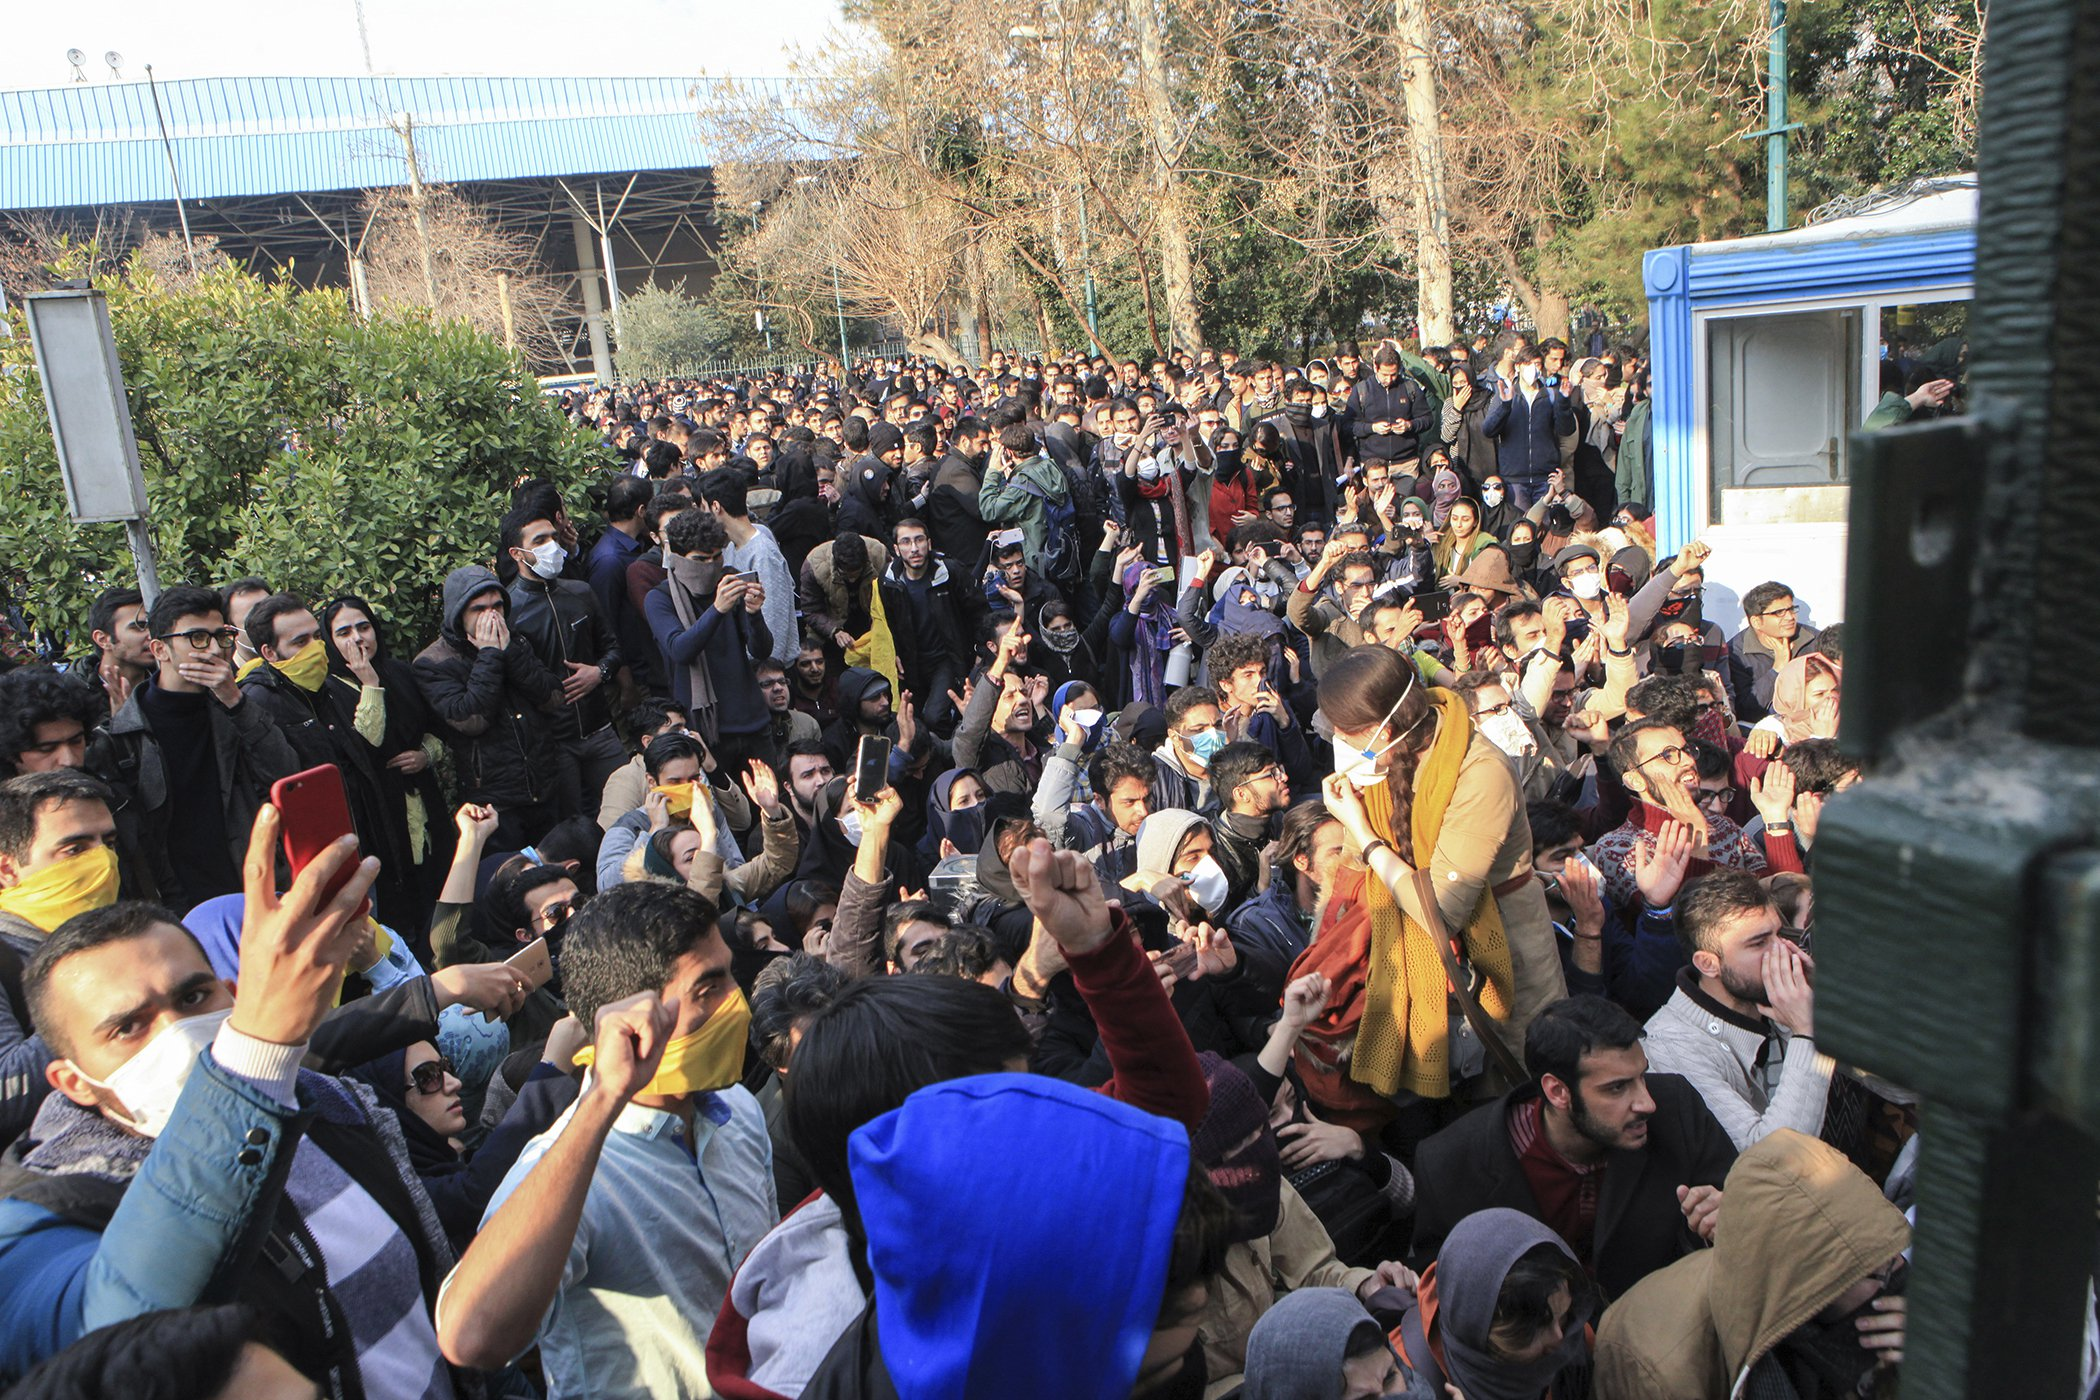 Iran-Government-Protests-Unrest.jpg